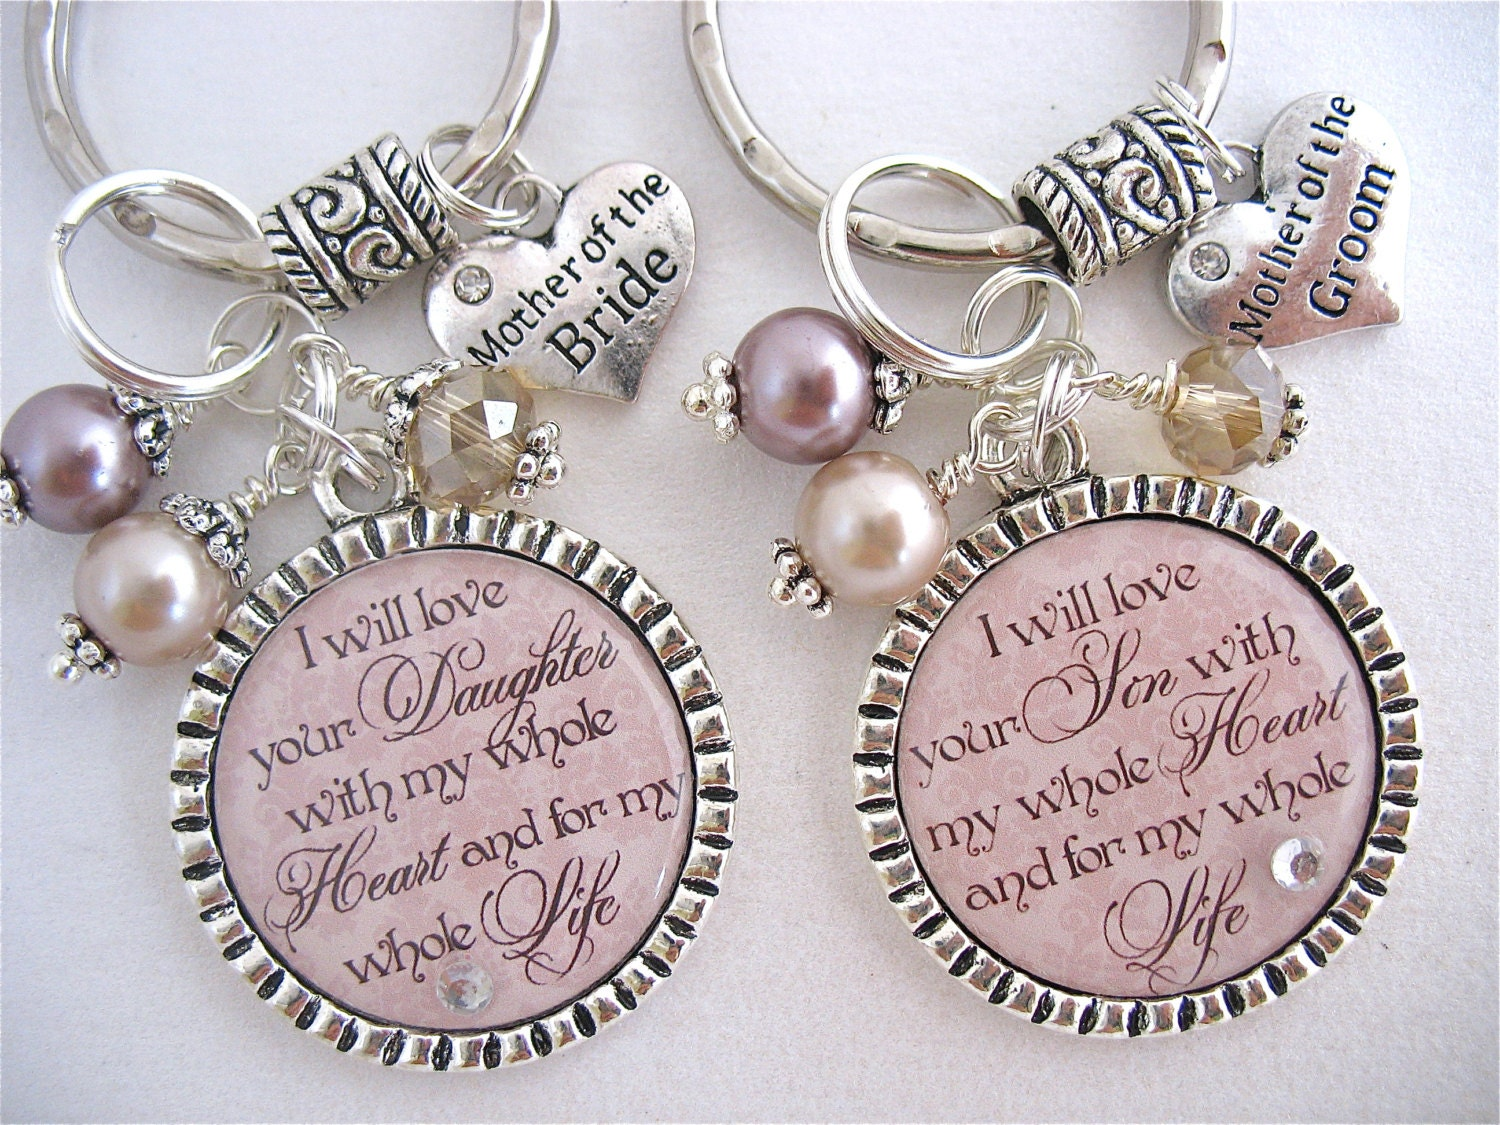 Personal Wedding Gifts For The Bride: Personalized Wedding Jewelry For MOTHER Of The BRIDE